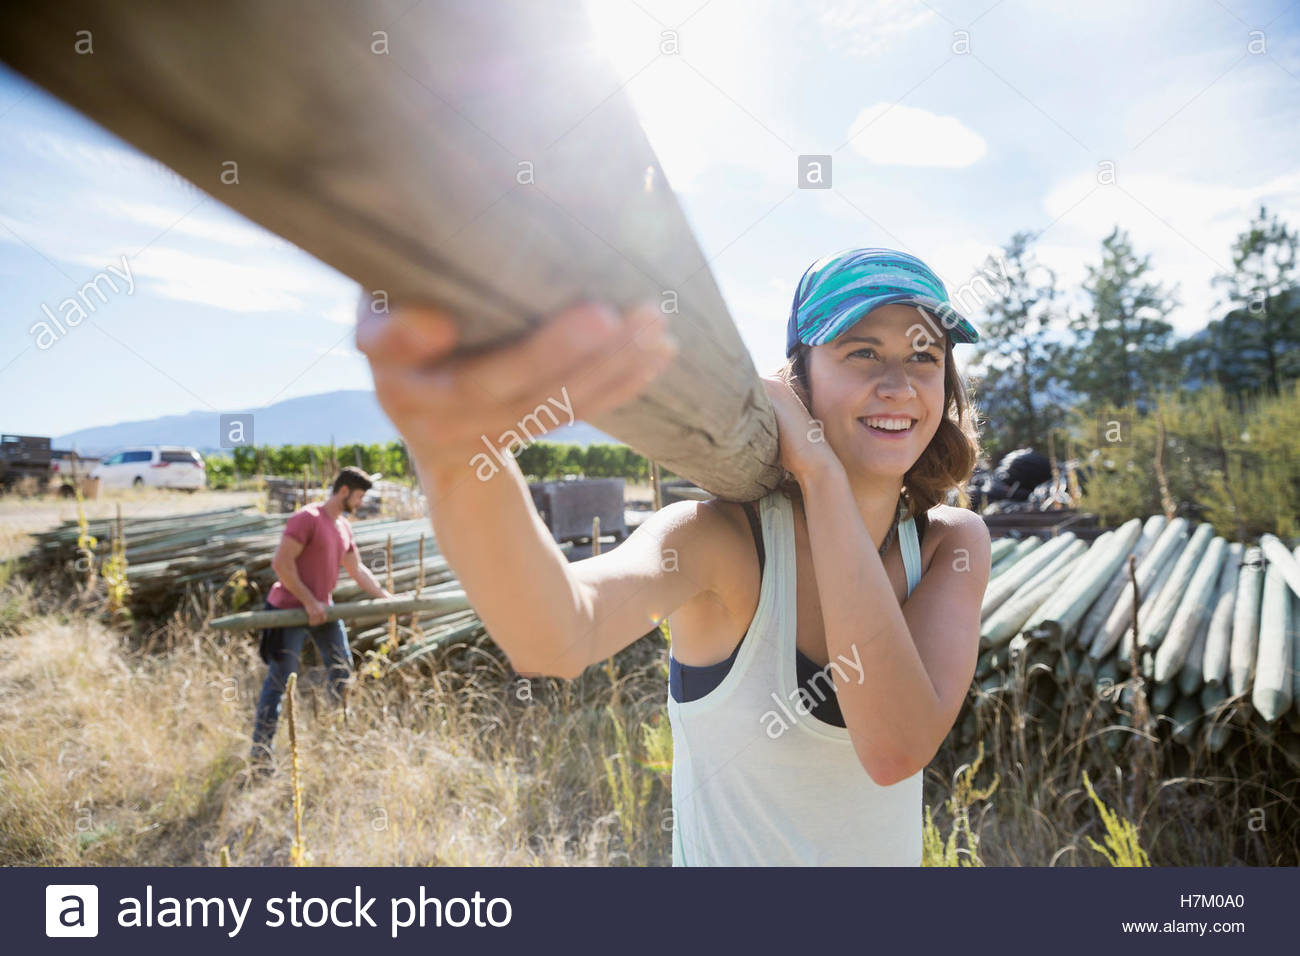 Smiling female farmer carrying wood fence post on sunny farm - Stock Image